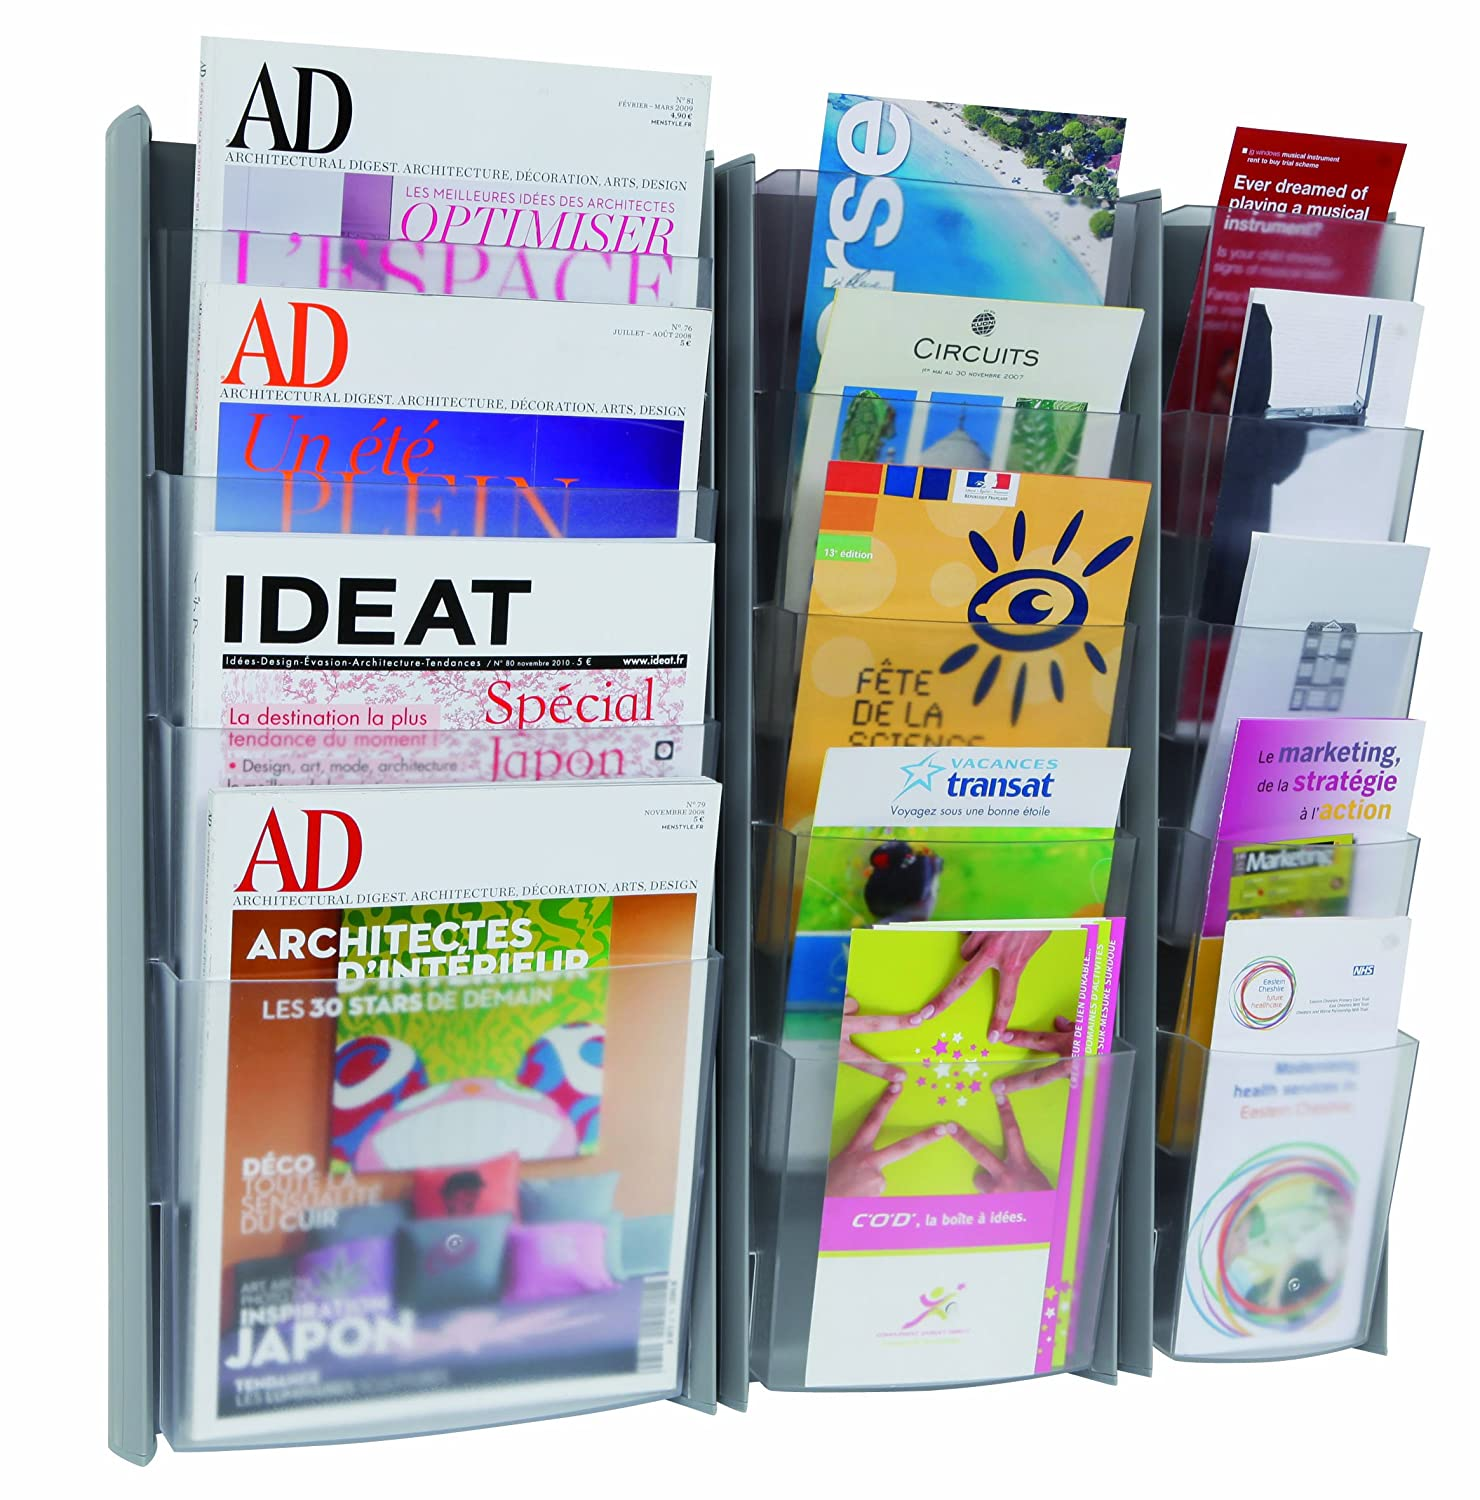 Amazon Alba 5 Pocket Wall Document Display 5 x 8 Inches Pockets Black DDPROMMM Literature Organizers fice Products